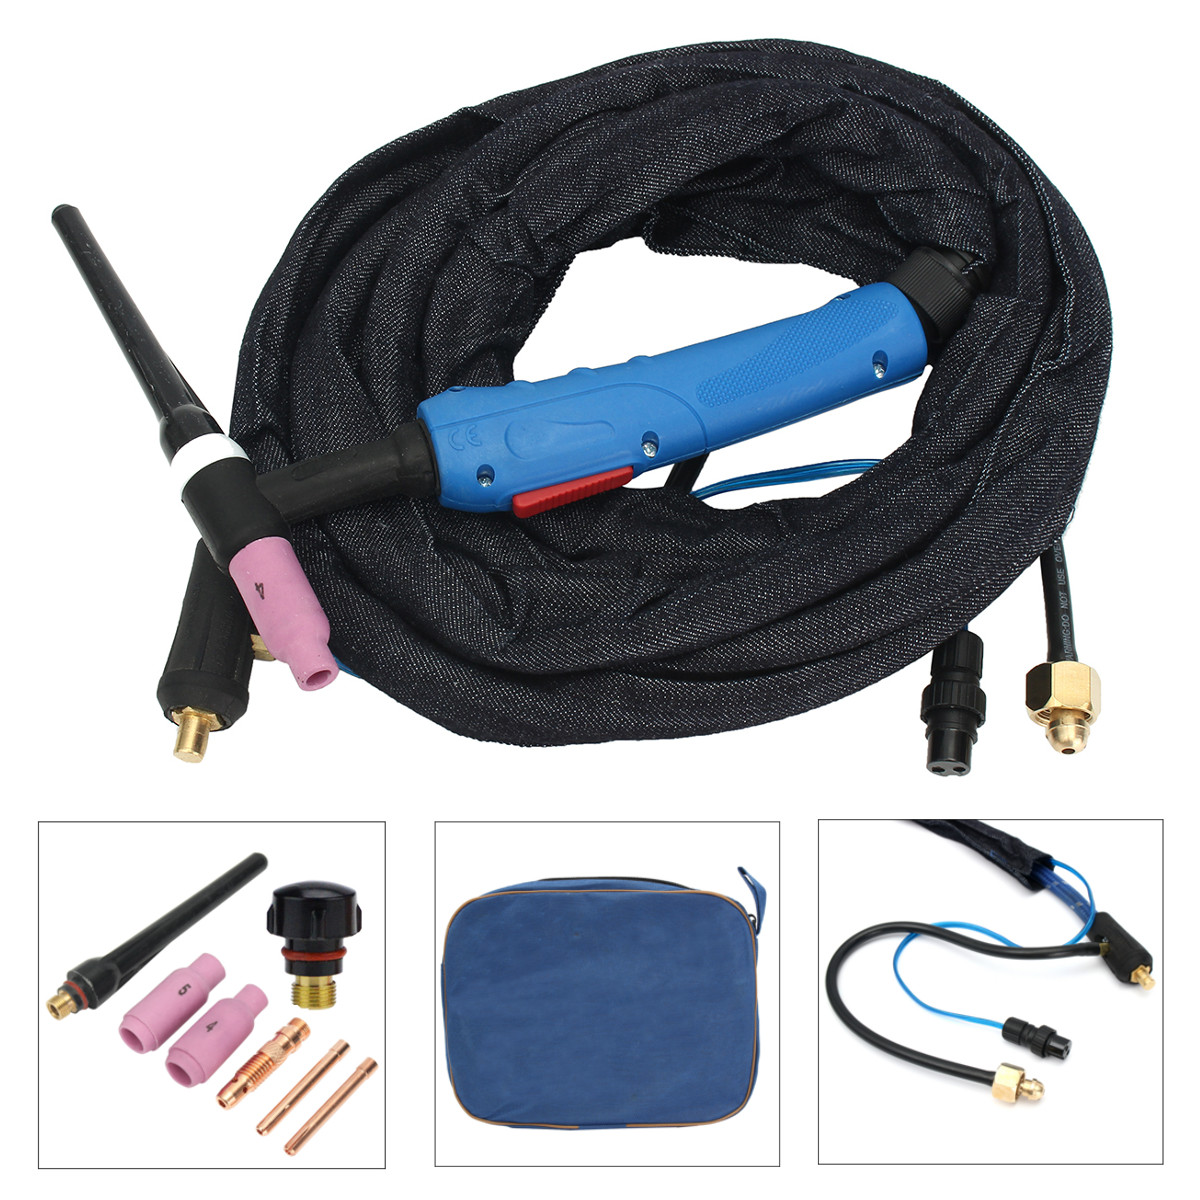 WP-17F 12Foot Air-Cool Tig Welding Torch Kit Complete Flexible Head Body Collet